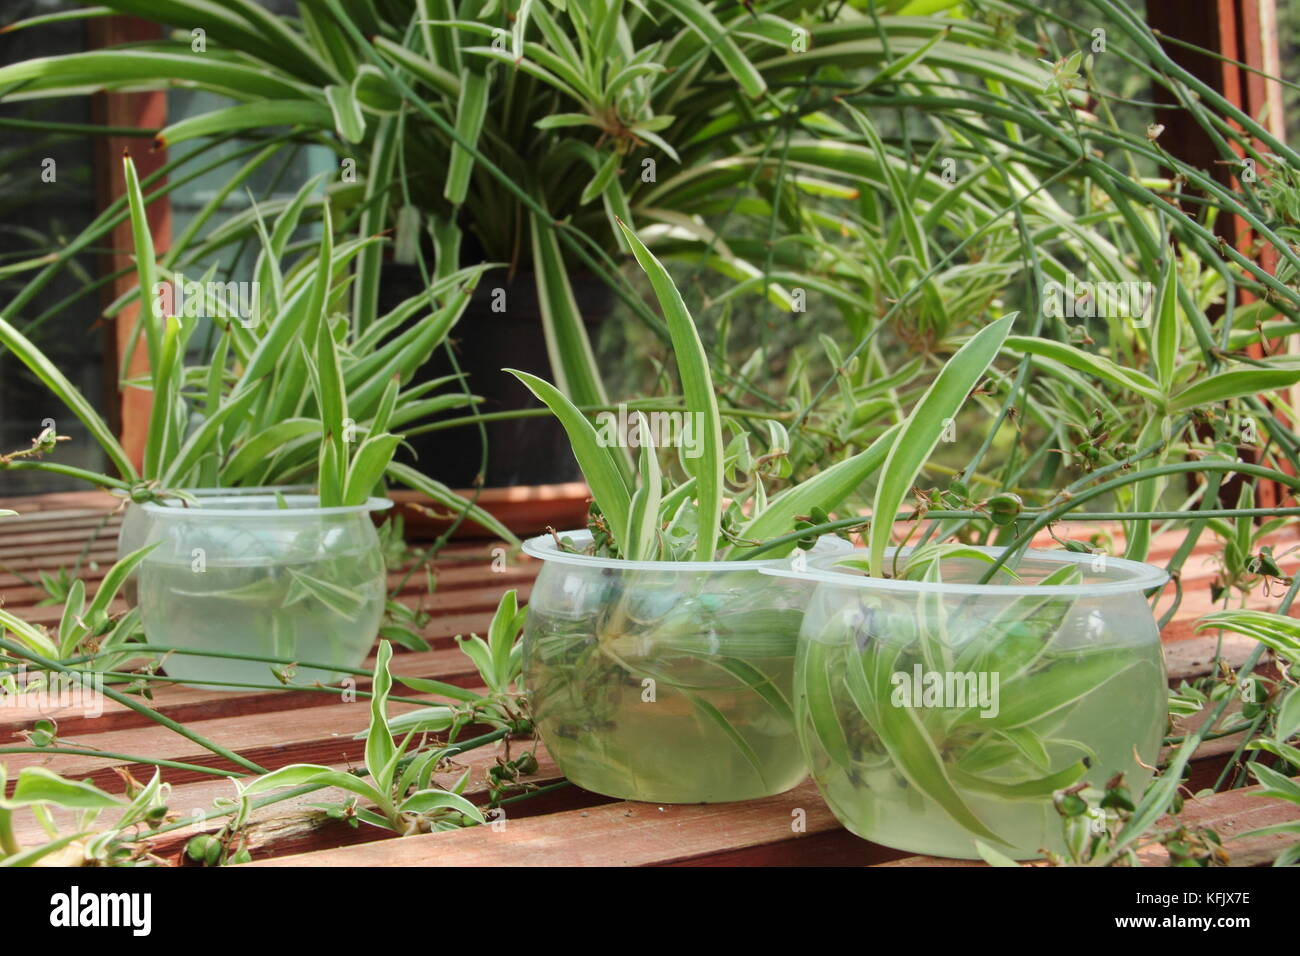 Propagating spider plants from runners (stolons) by placing in water to encourage root growth in baby plants (plantlets), - Stock Image